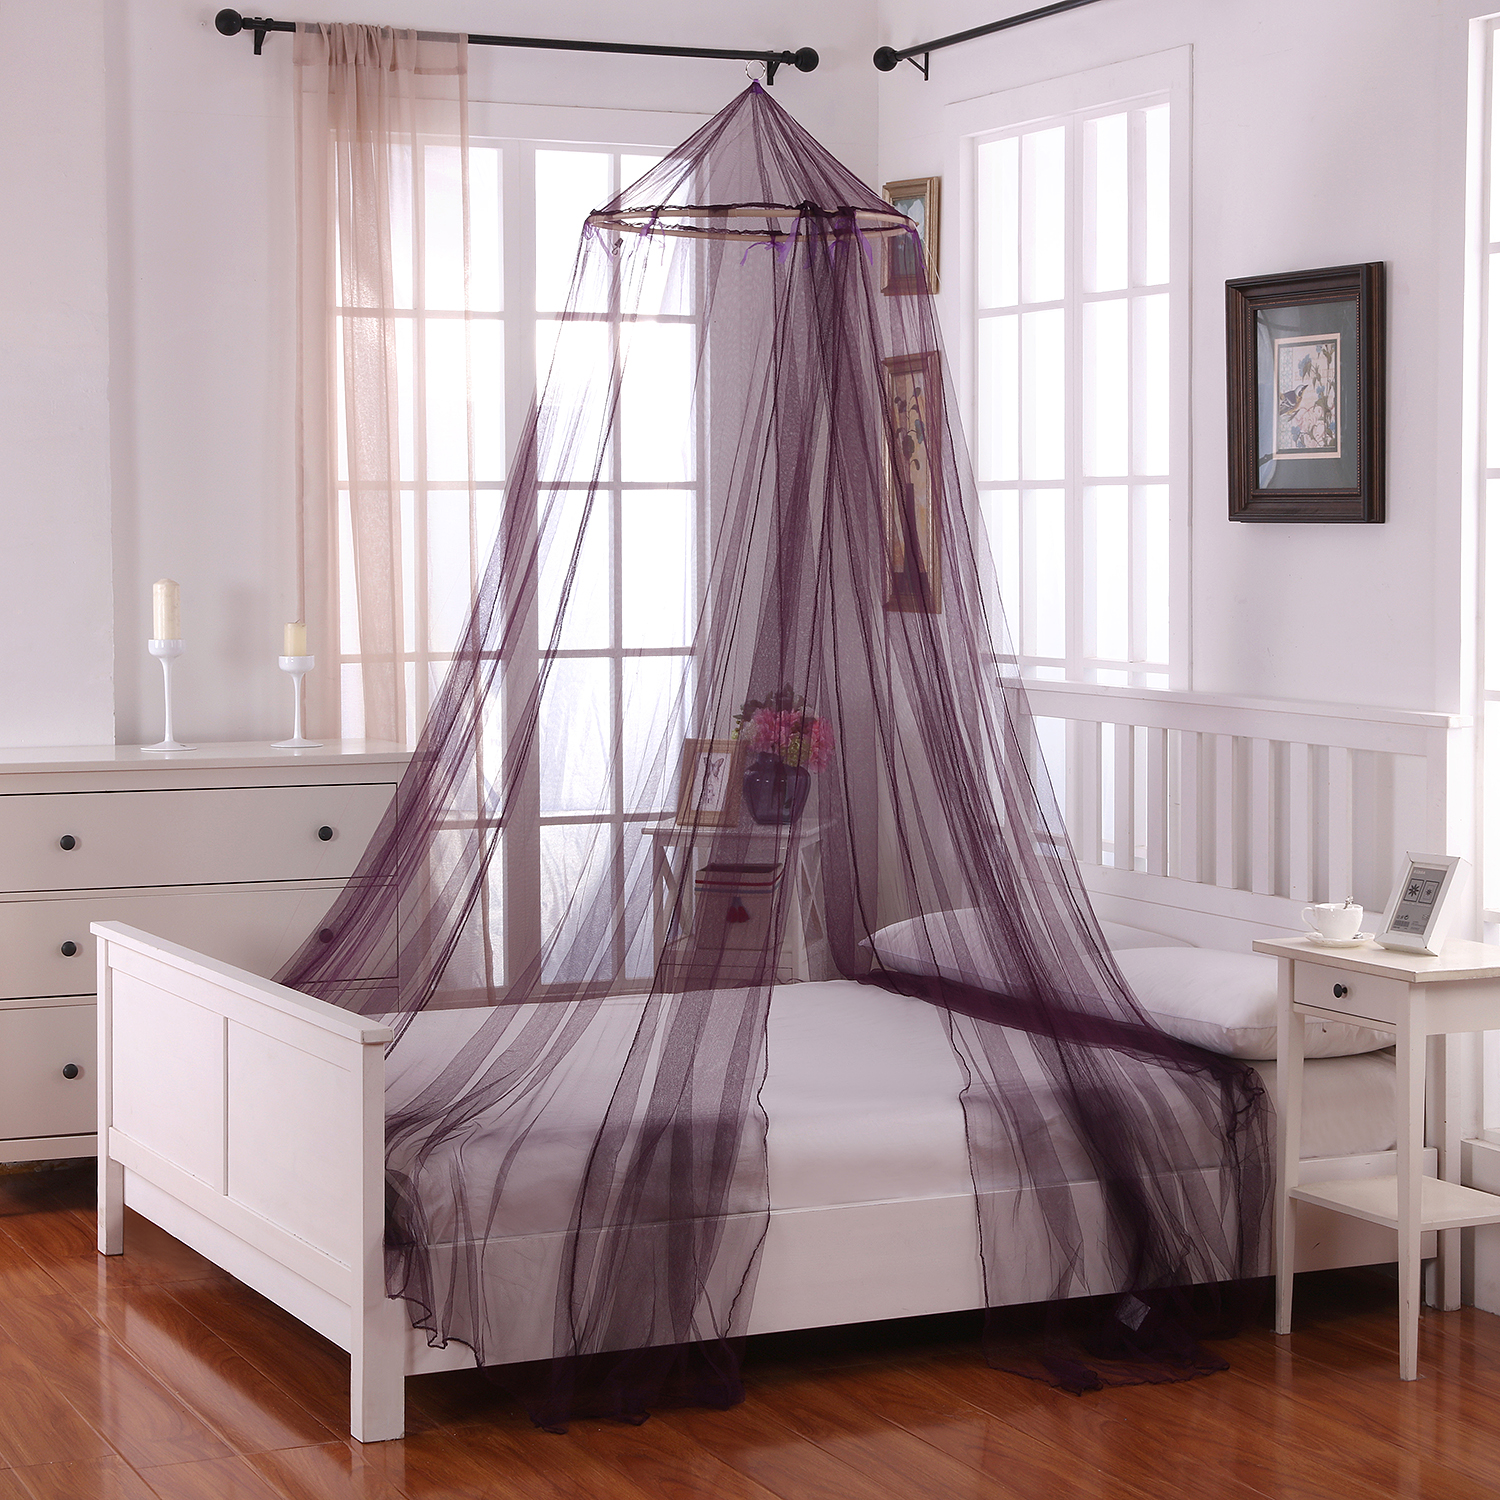 100 where can i buy canopy bed curtains bedroom buy canopy